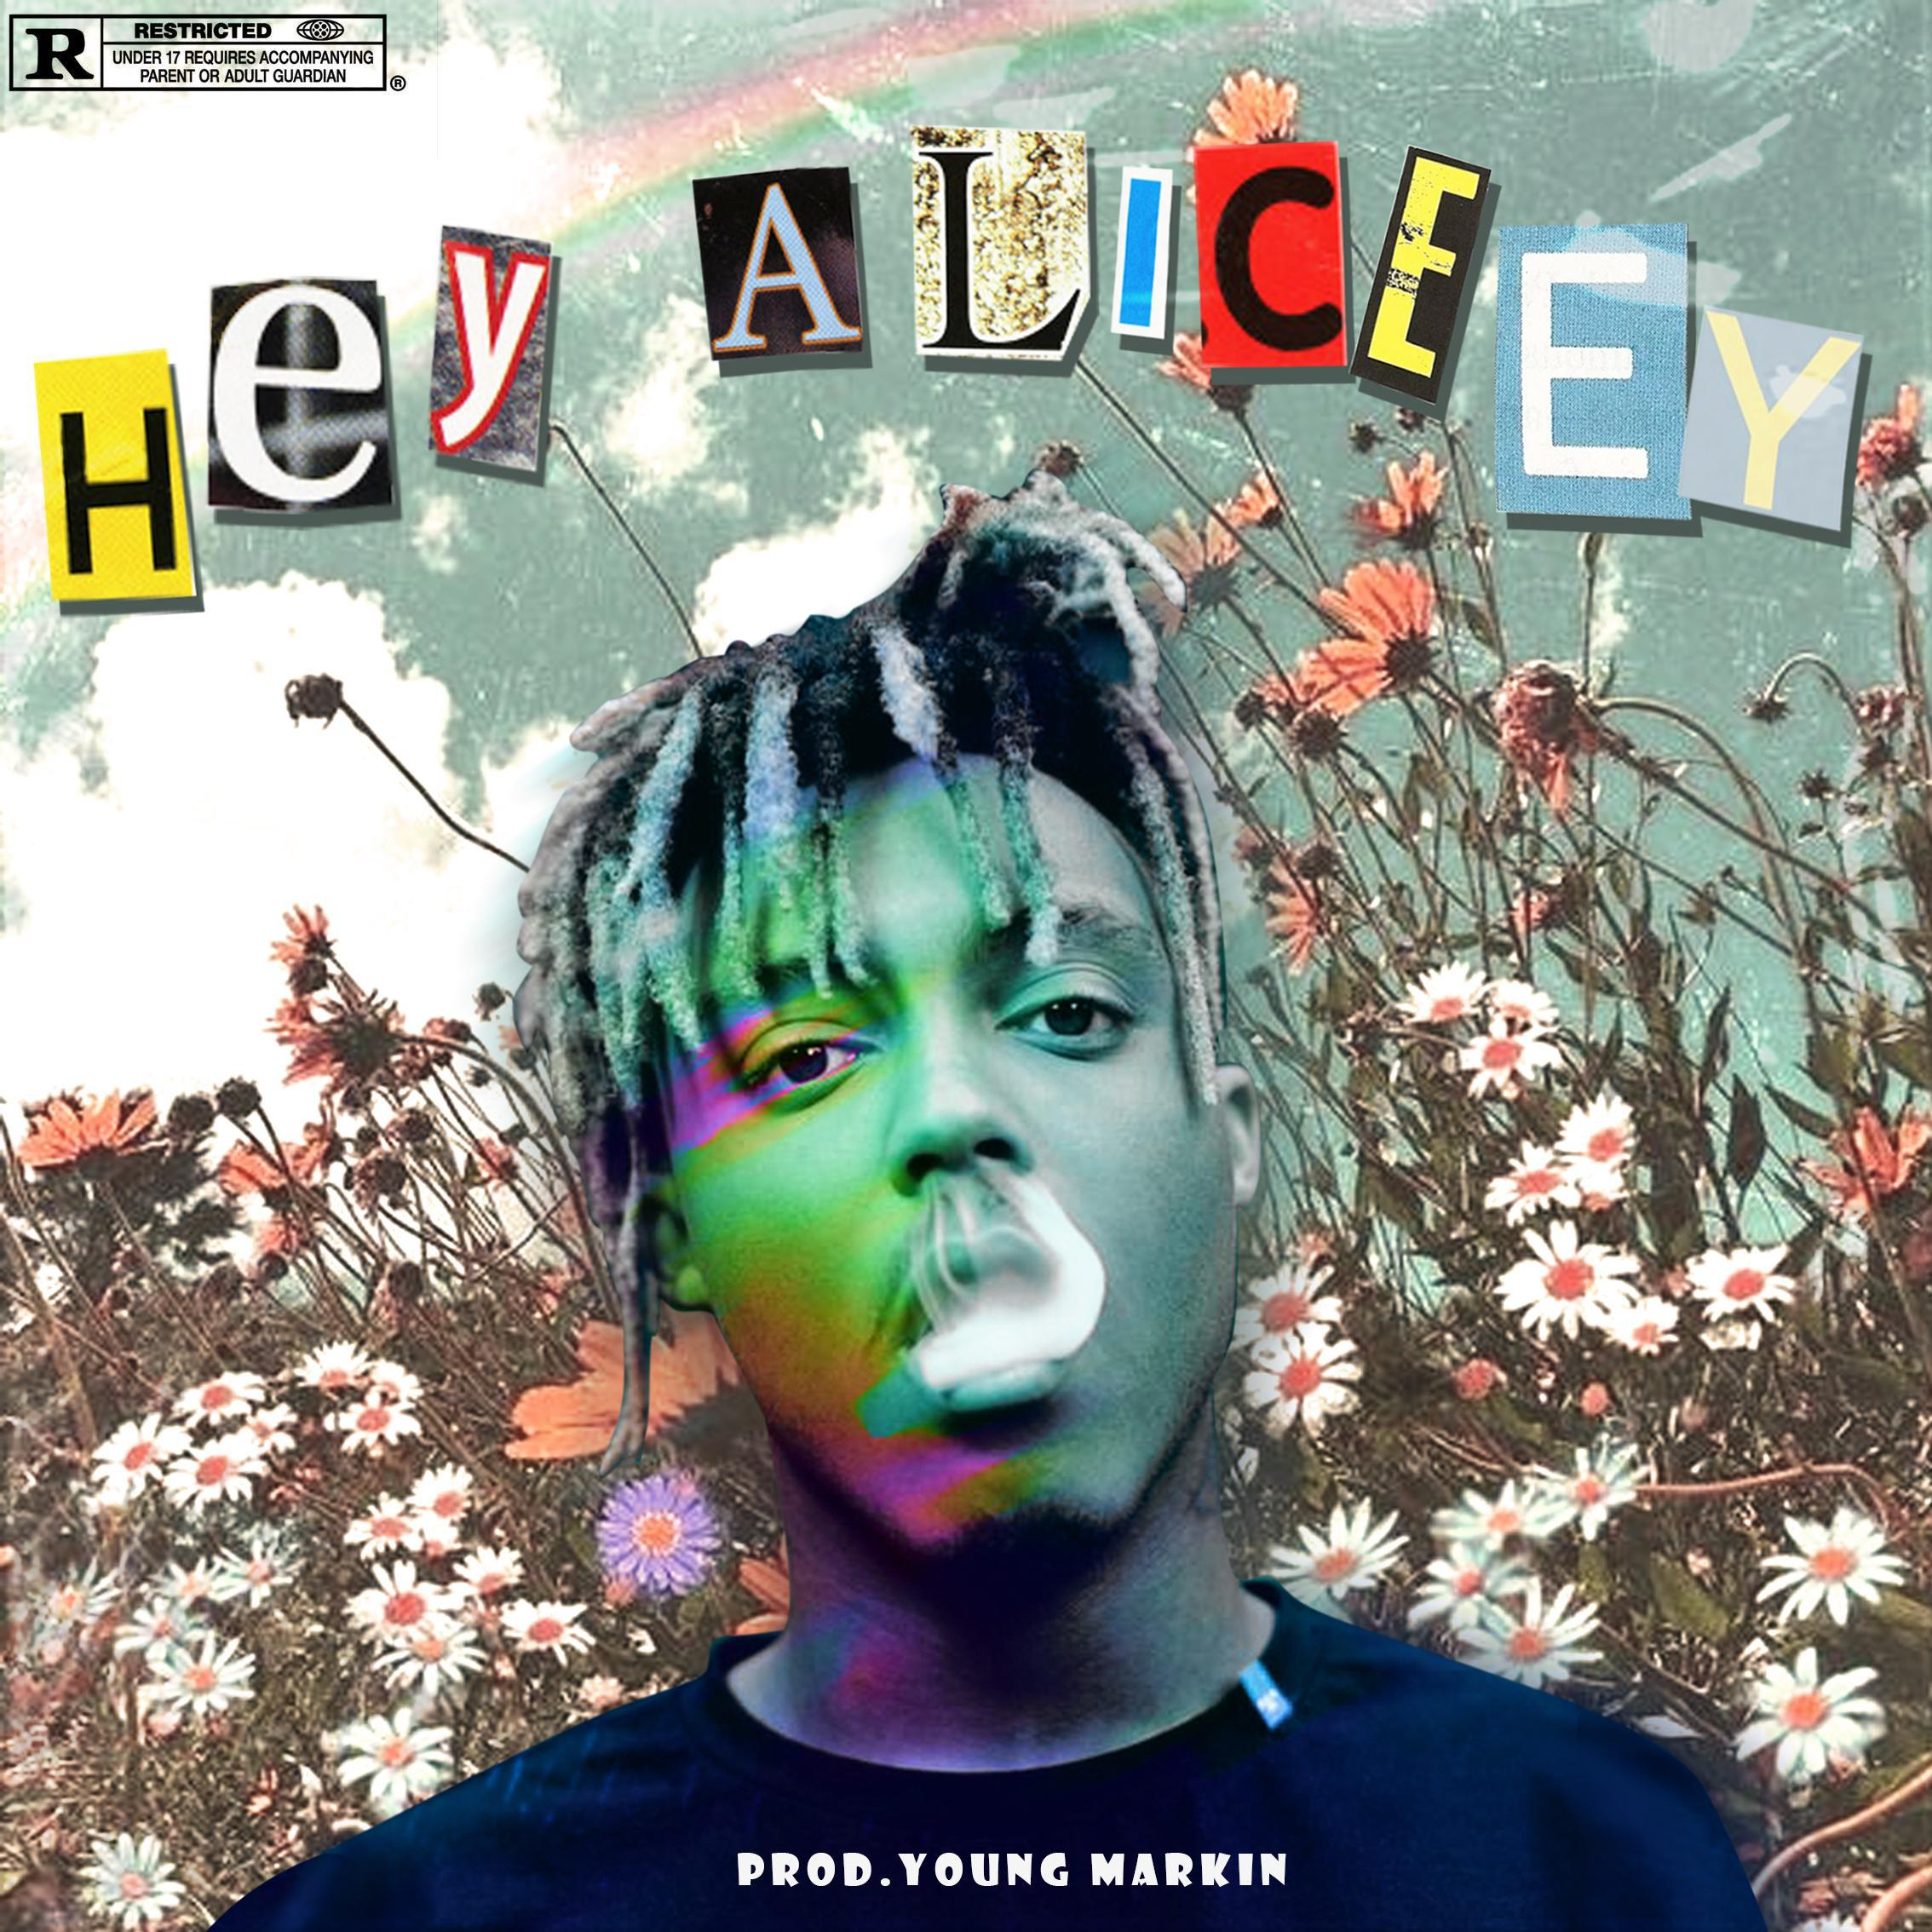 [Free] Hey Aliceey (prod by YoungMarkin)